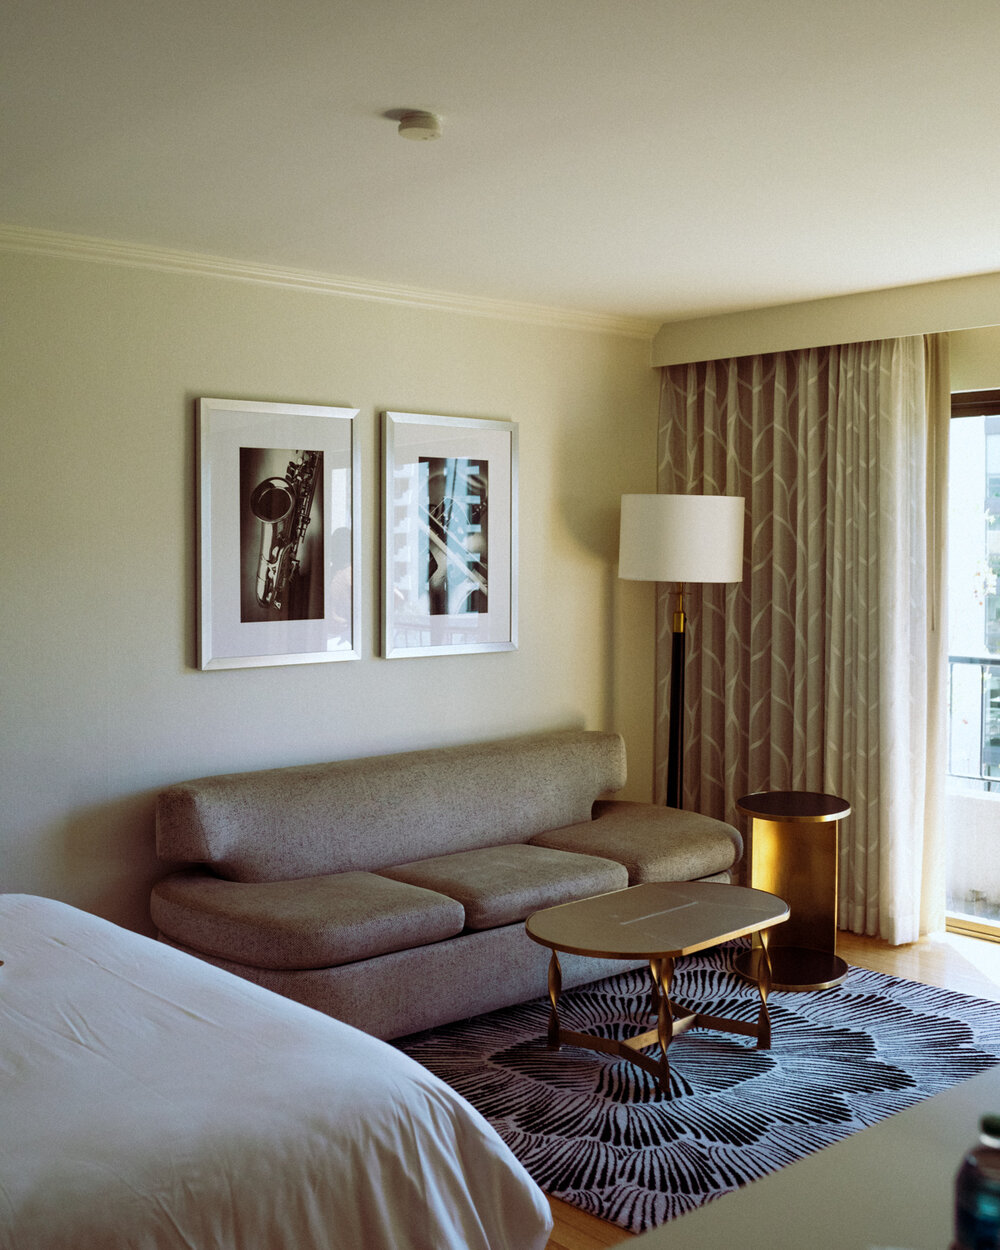 Rachel Off Duty: The Rooms at the Avenue of the Arts Hotel in Costa Mesa